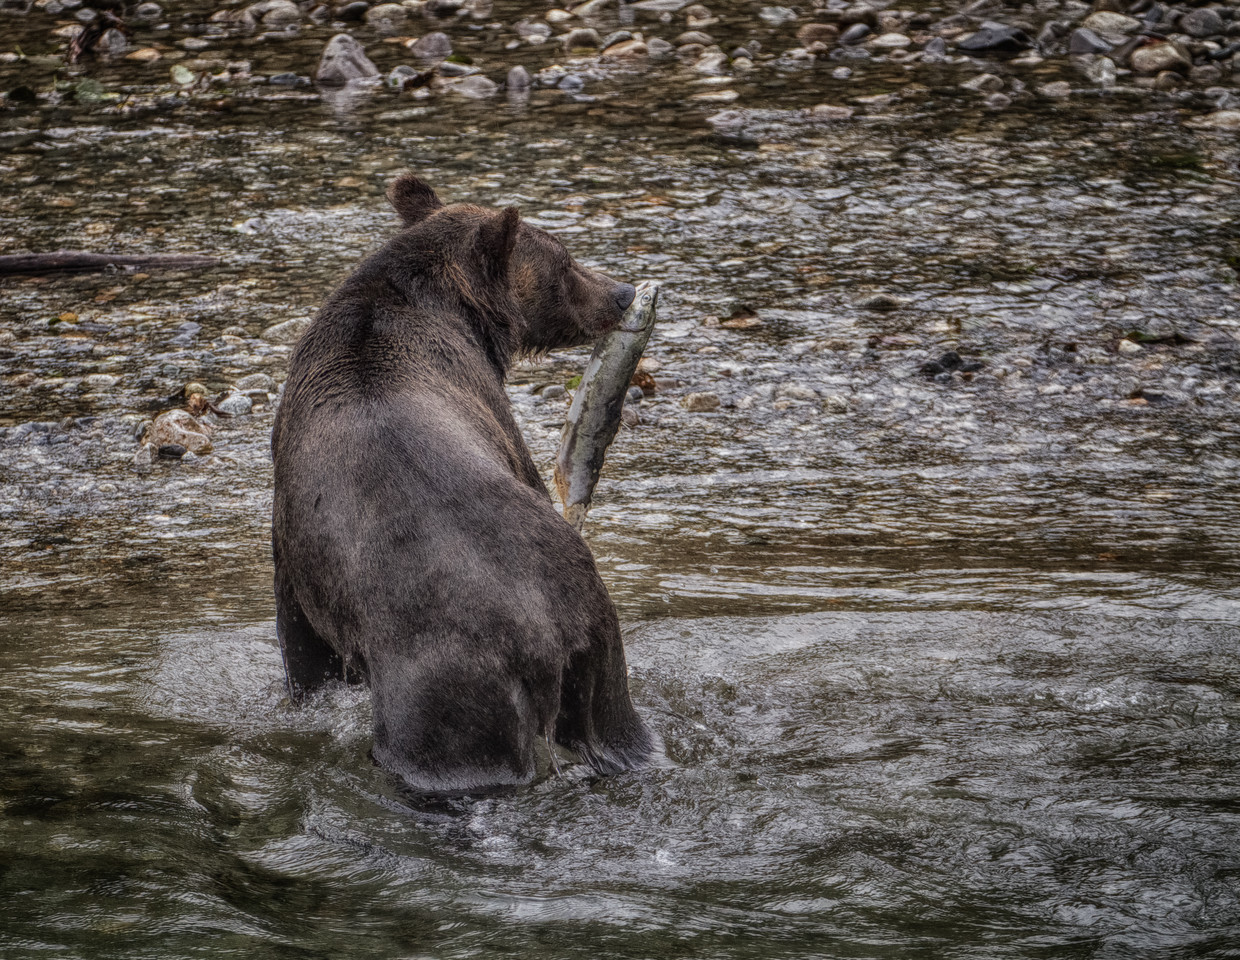 September 3, 2013: Used HDR processing with this one as well. It was common for the bears to leave the river on the far side from where we were standing and eat with their back to us. Guess it's a great way to guard their food - not that I would challenge them for it!!